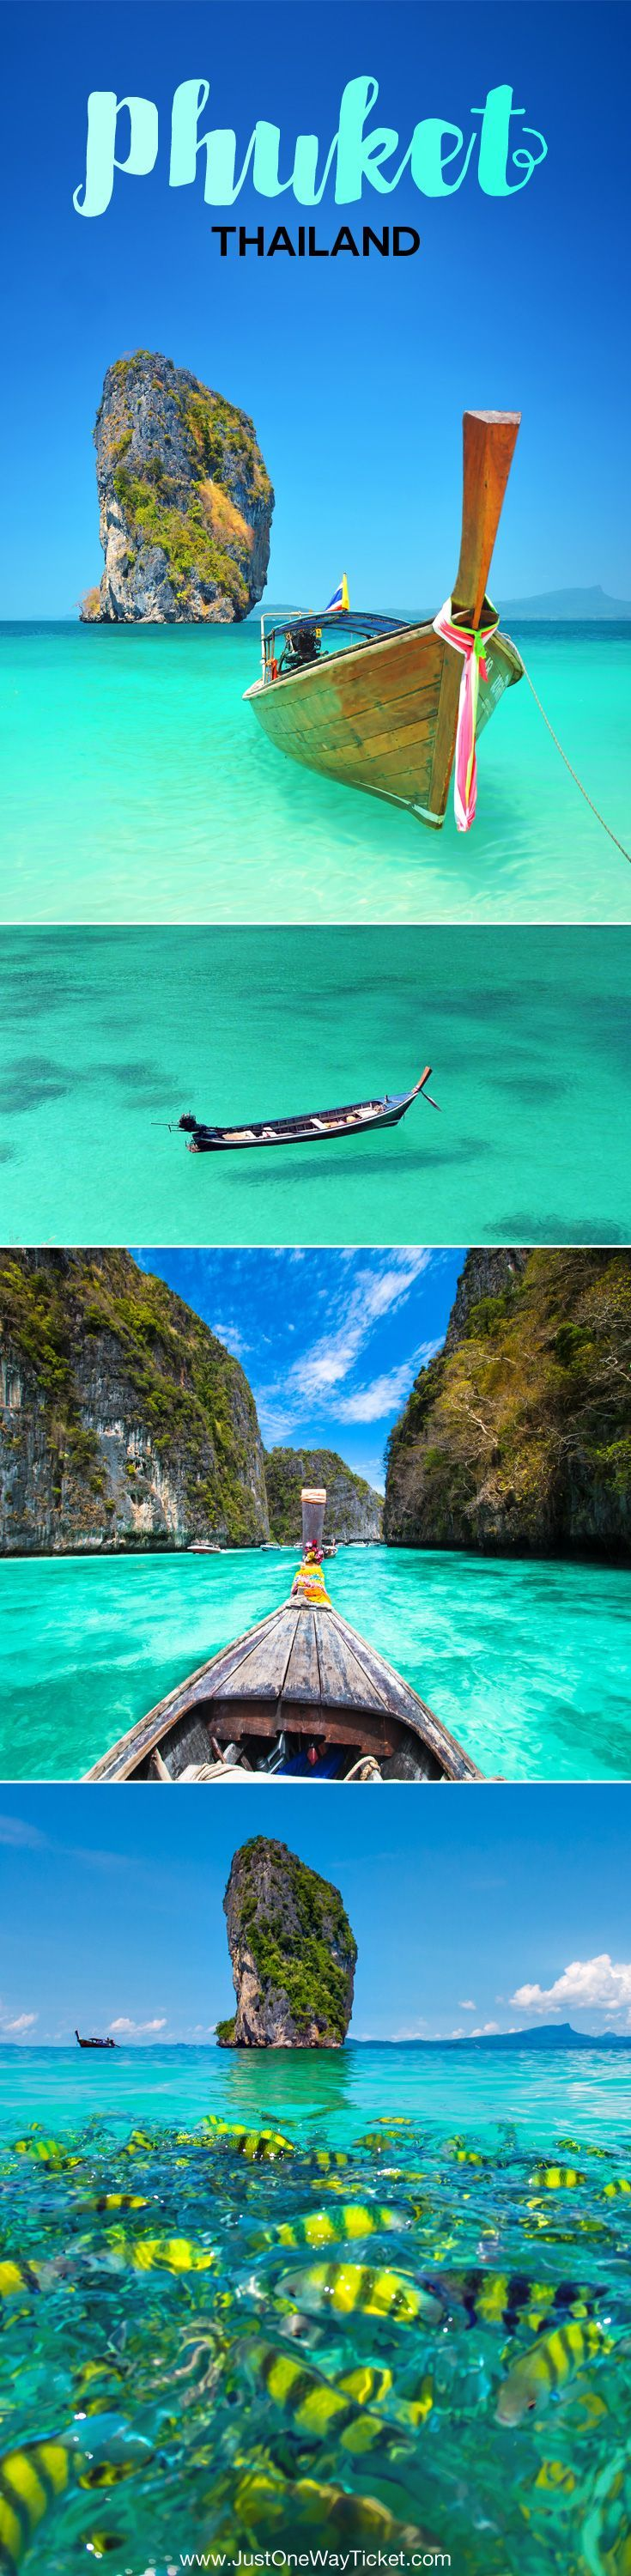 Travel Guide To Phuket: Things To Do in Phuket And Places To Stay | Phuket offers natural beauty, rich culture, white beaches, tropical islands and plenty of adventure activities | via @Just1WayTicket | Photo © Depositphotos